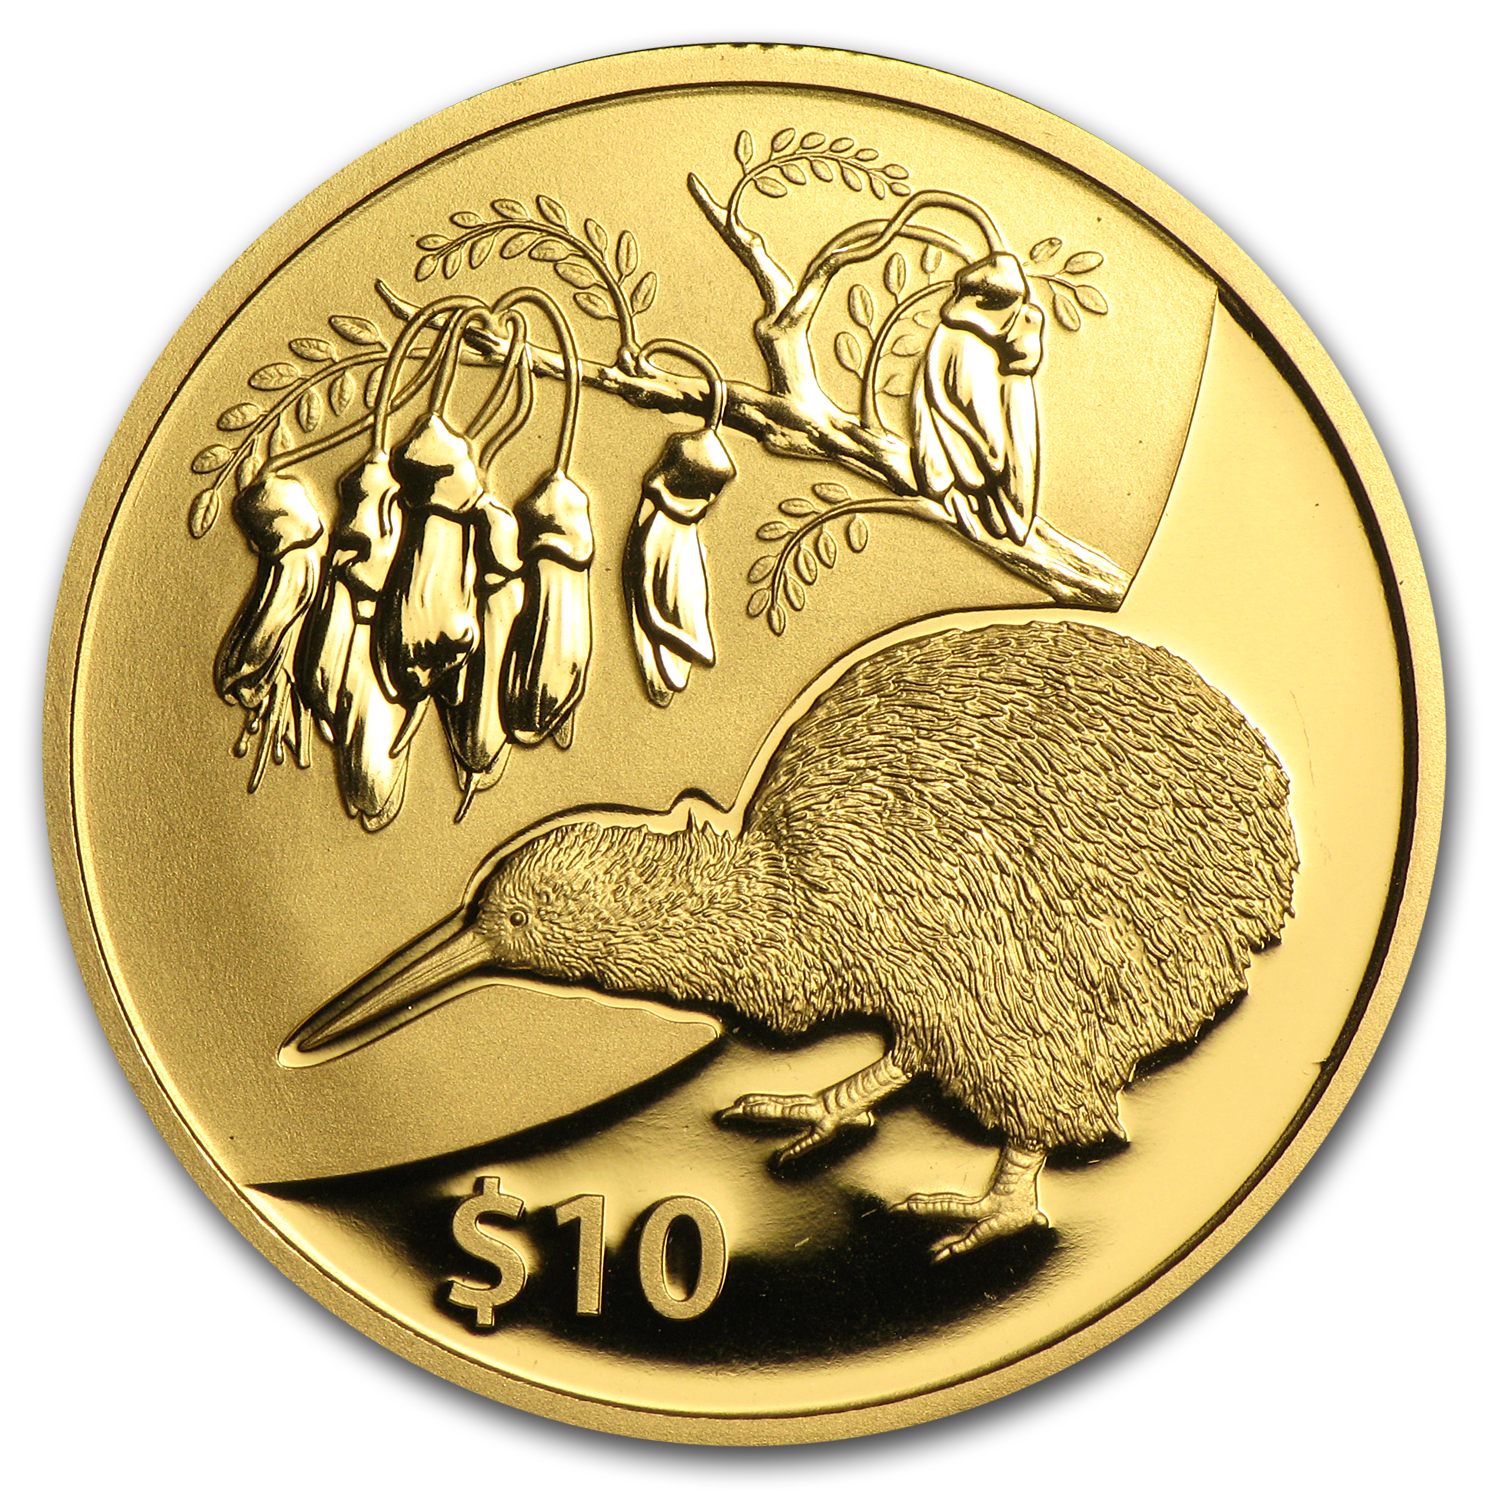 2012 1/4 oz Gold New Zealand $10 Treasures Kowhai Proof